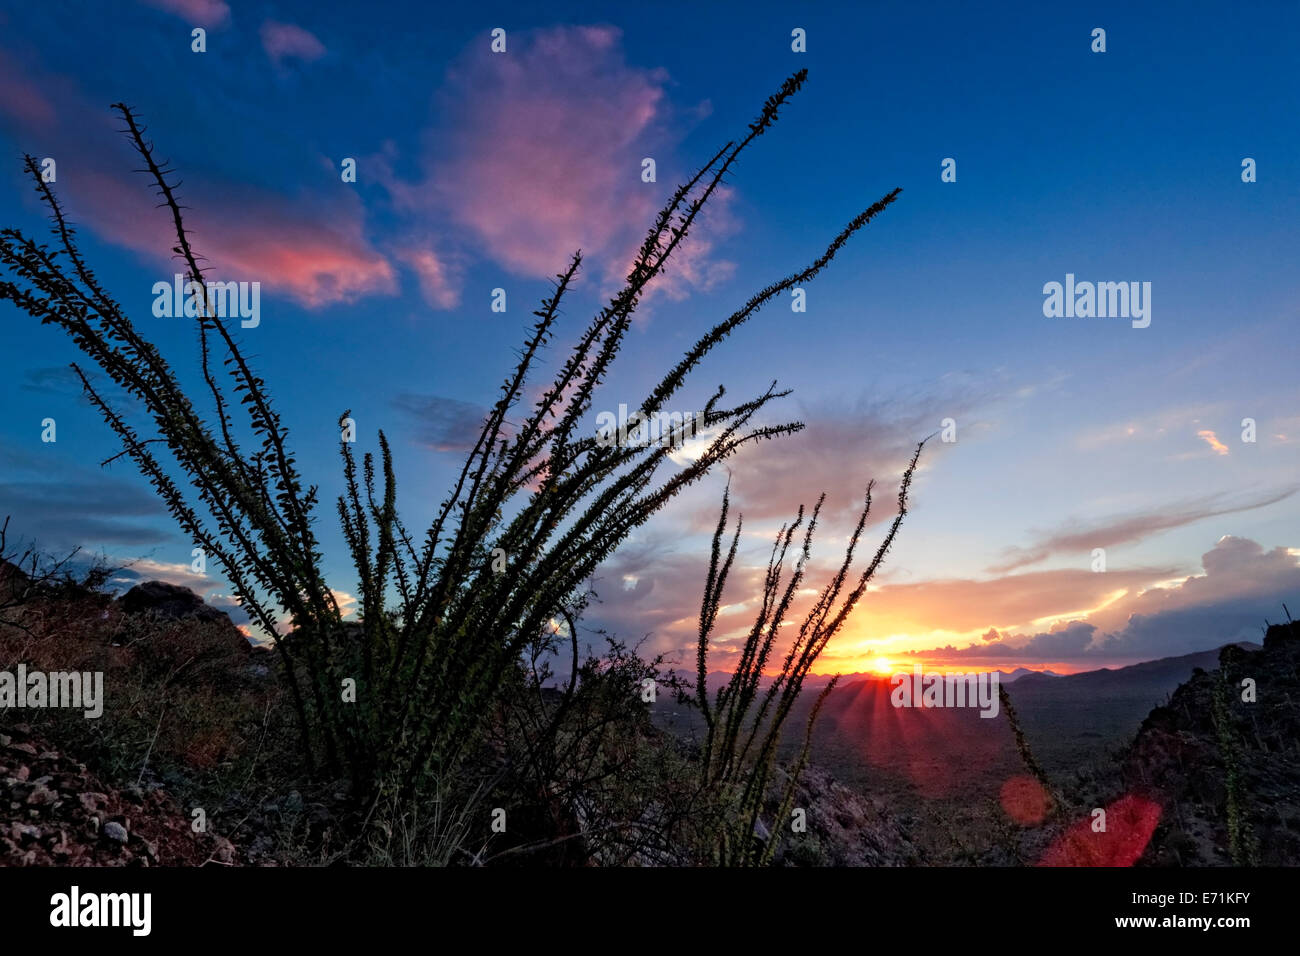 Sundown at Gates Pass, Saguaro NP, Arizona - Stock Image